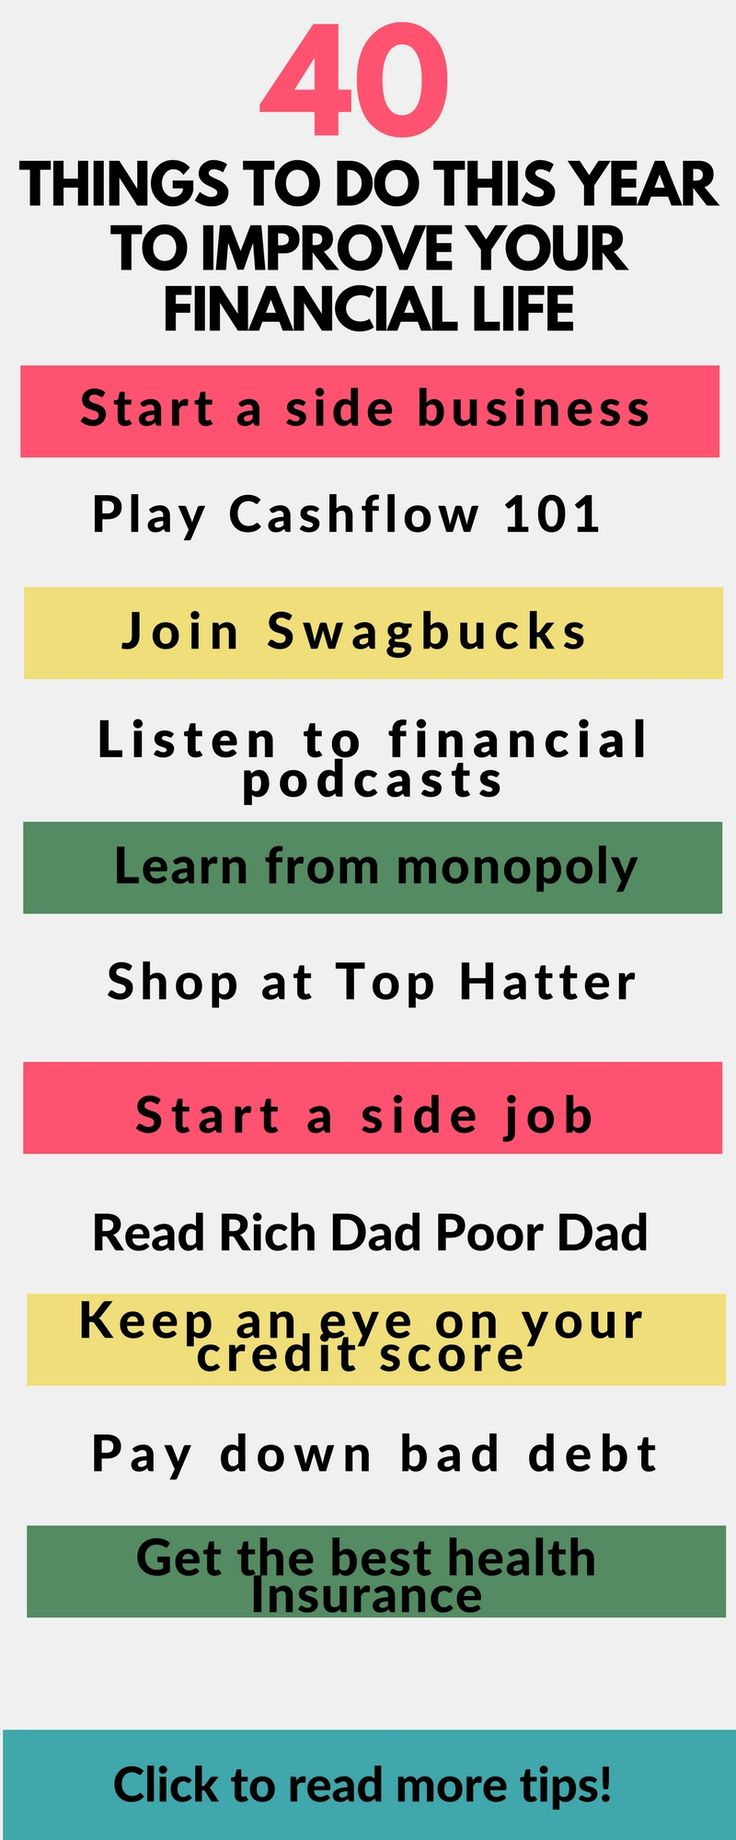 The best tips to improve your finances this year} Money tips